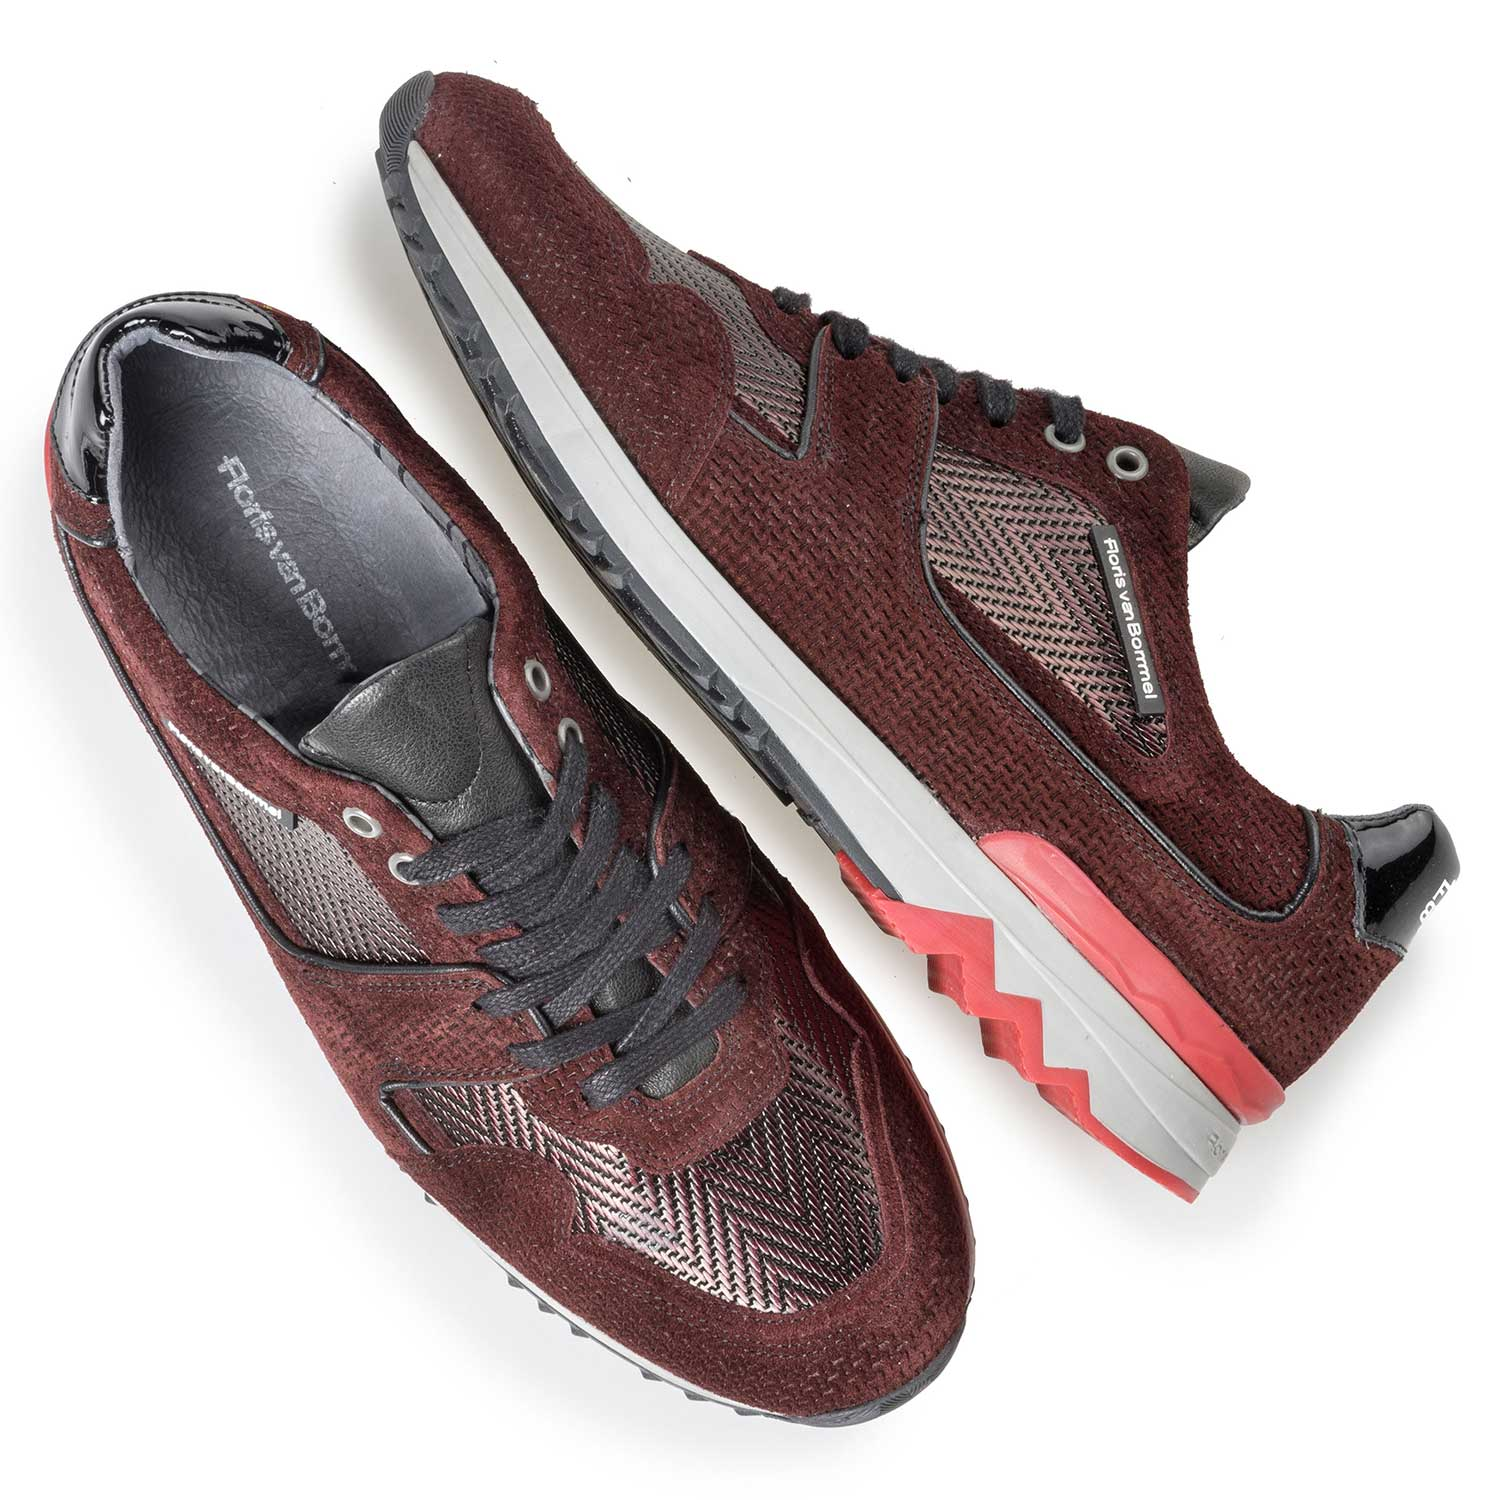 16220/16 - Burgundy red leather sneaker with metallic print